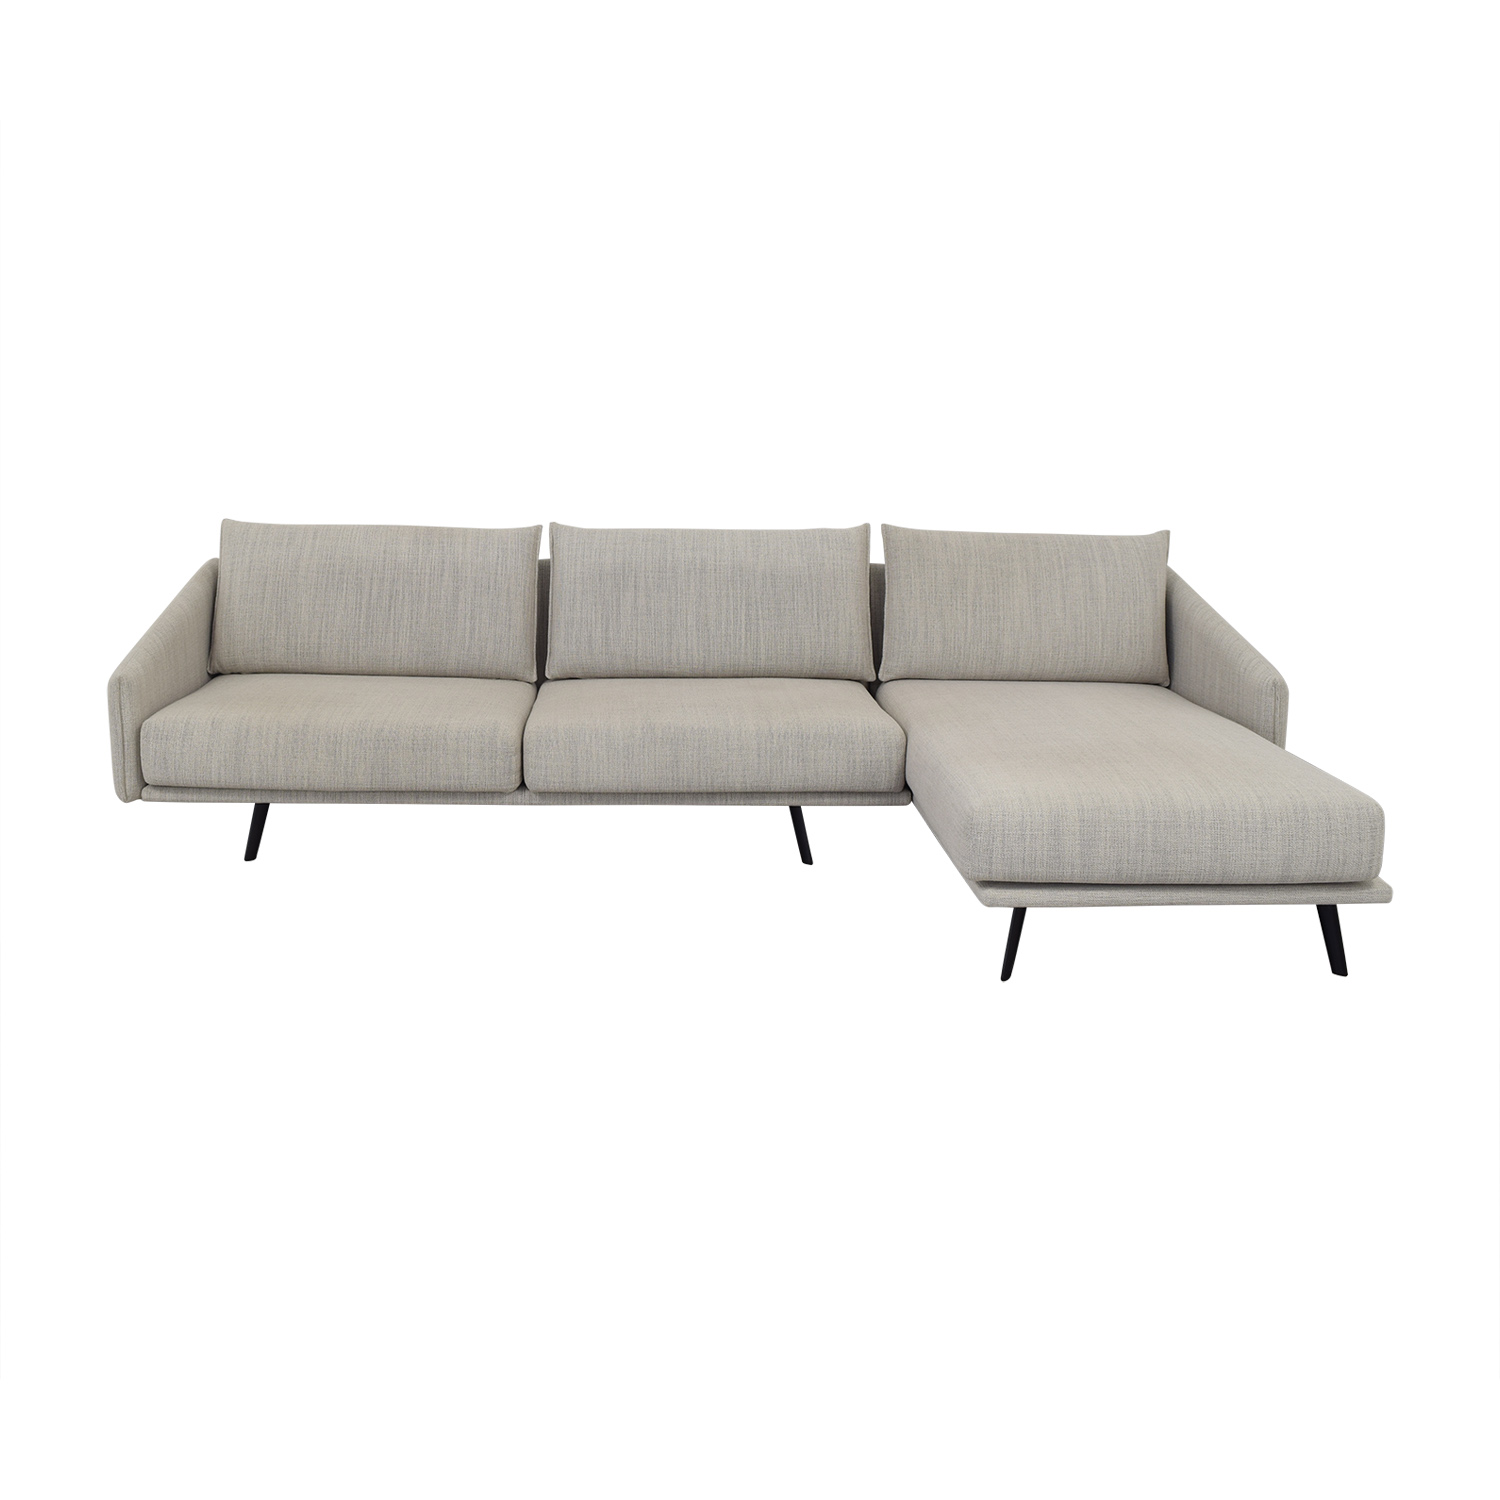 Design Within Reach Design Within Reach Costura Sectional with Chaise Sofas